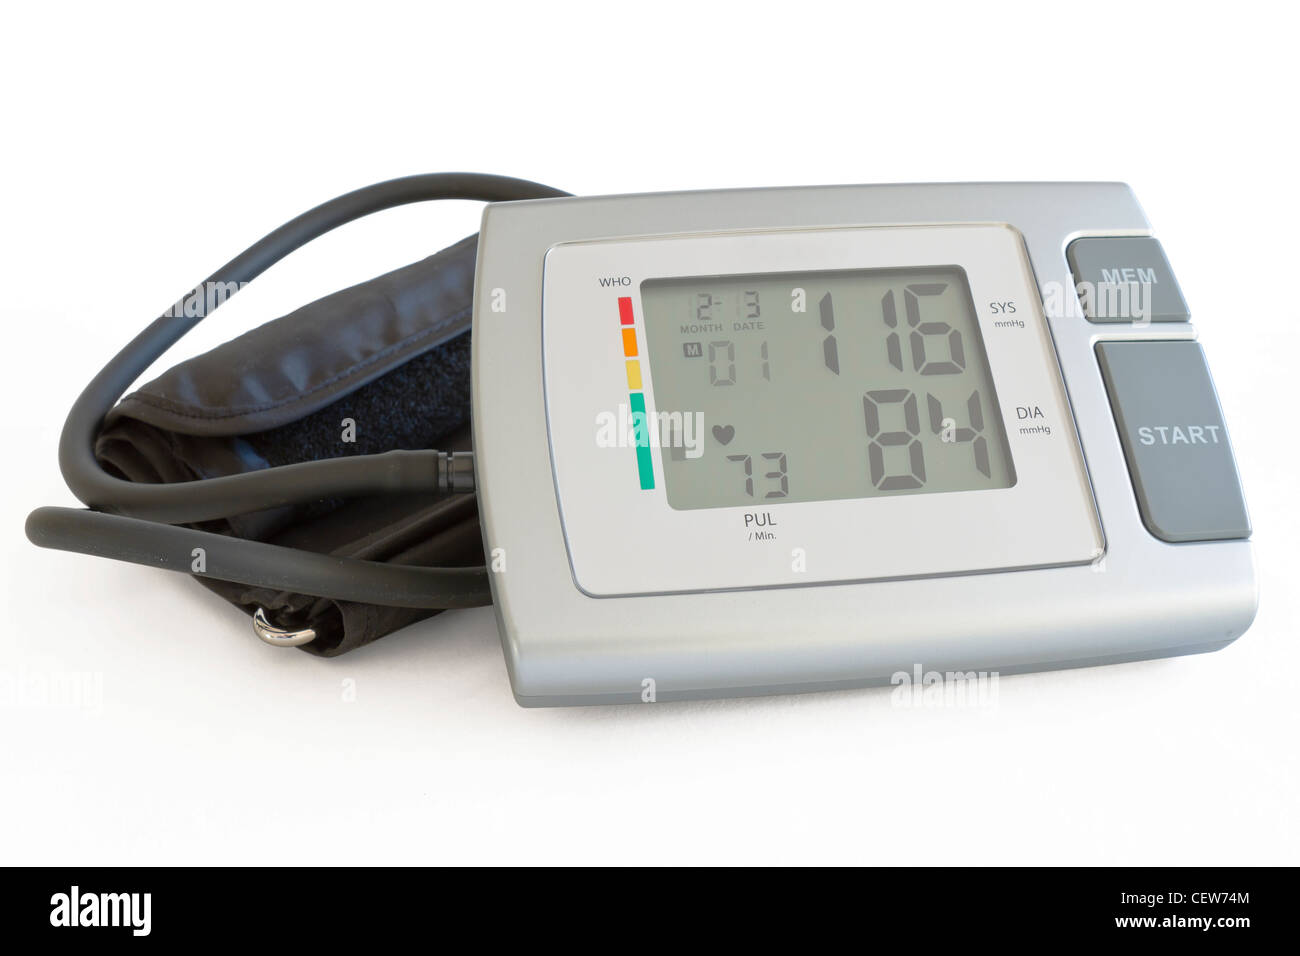 Healthcare Blood Pressure Monitoring - Stock Image